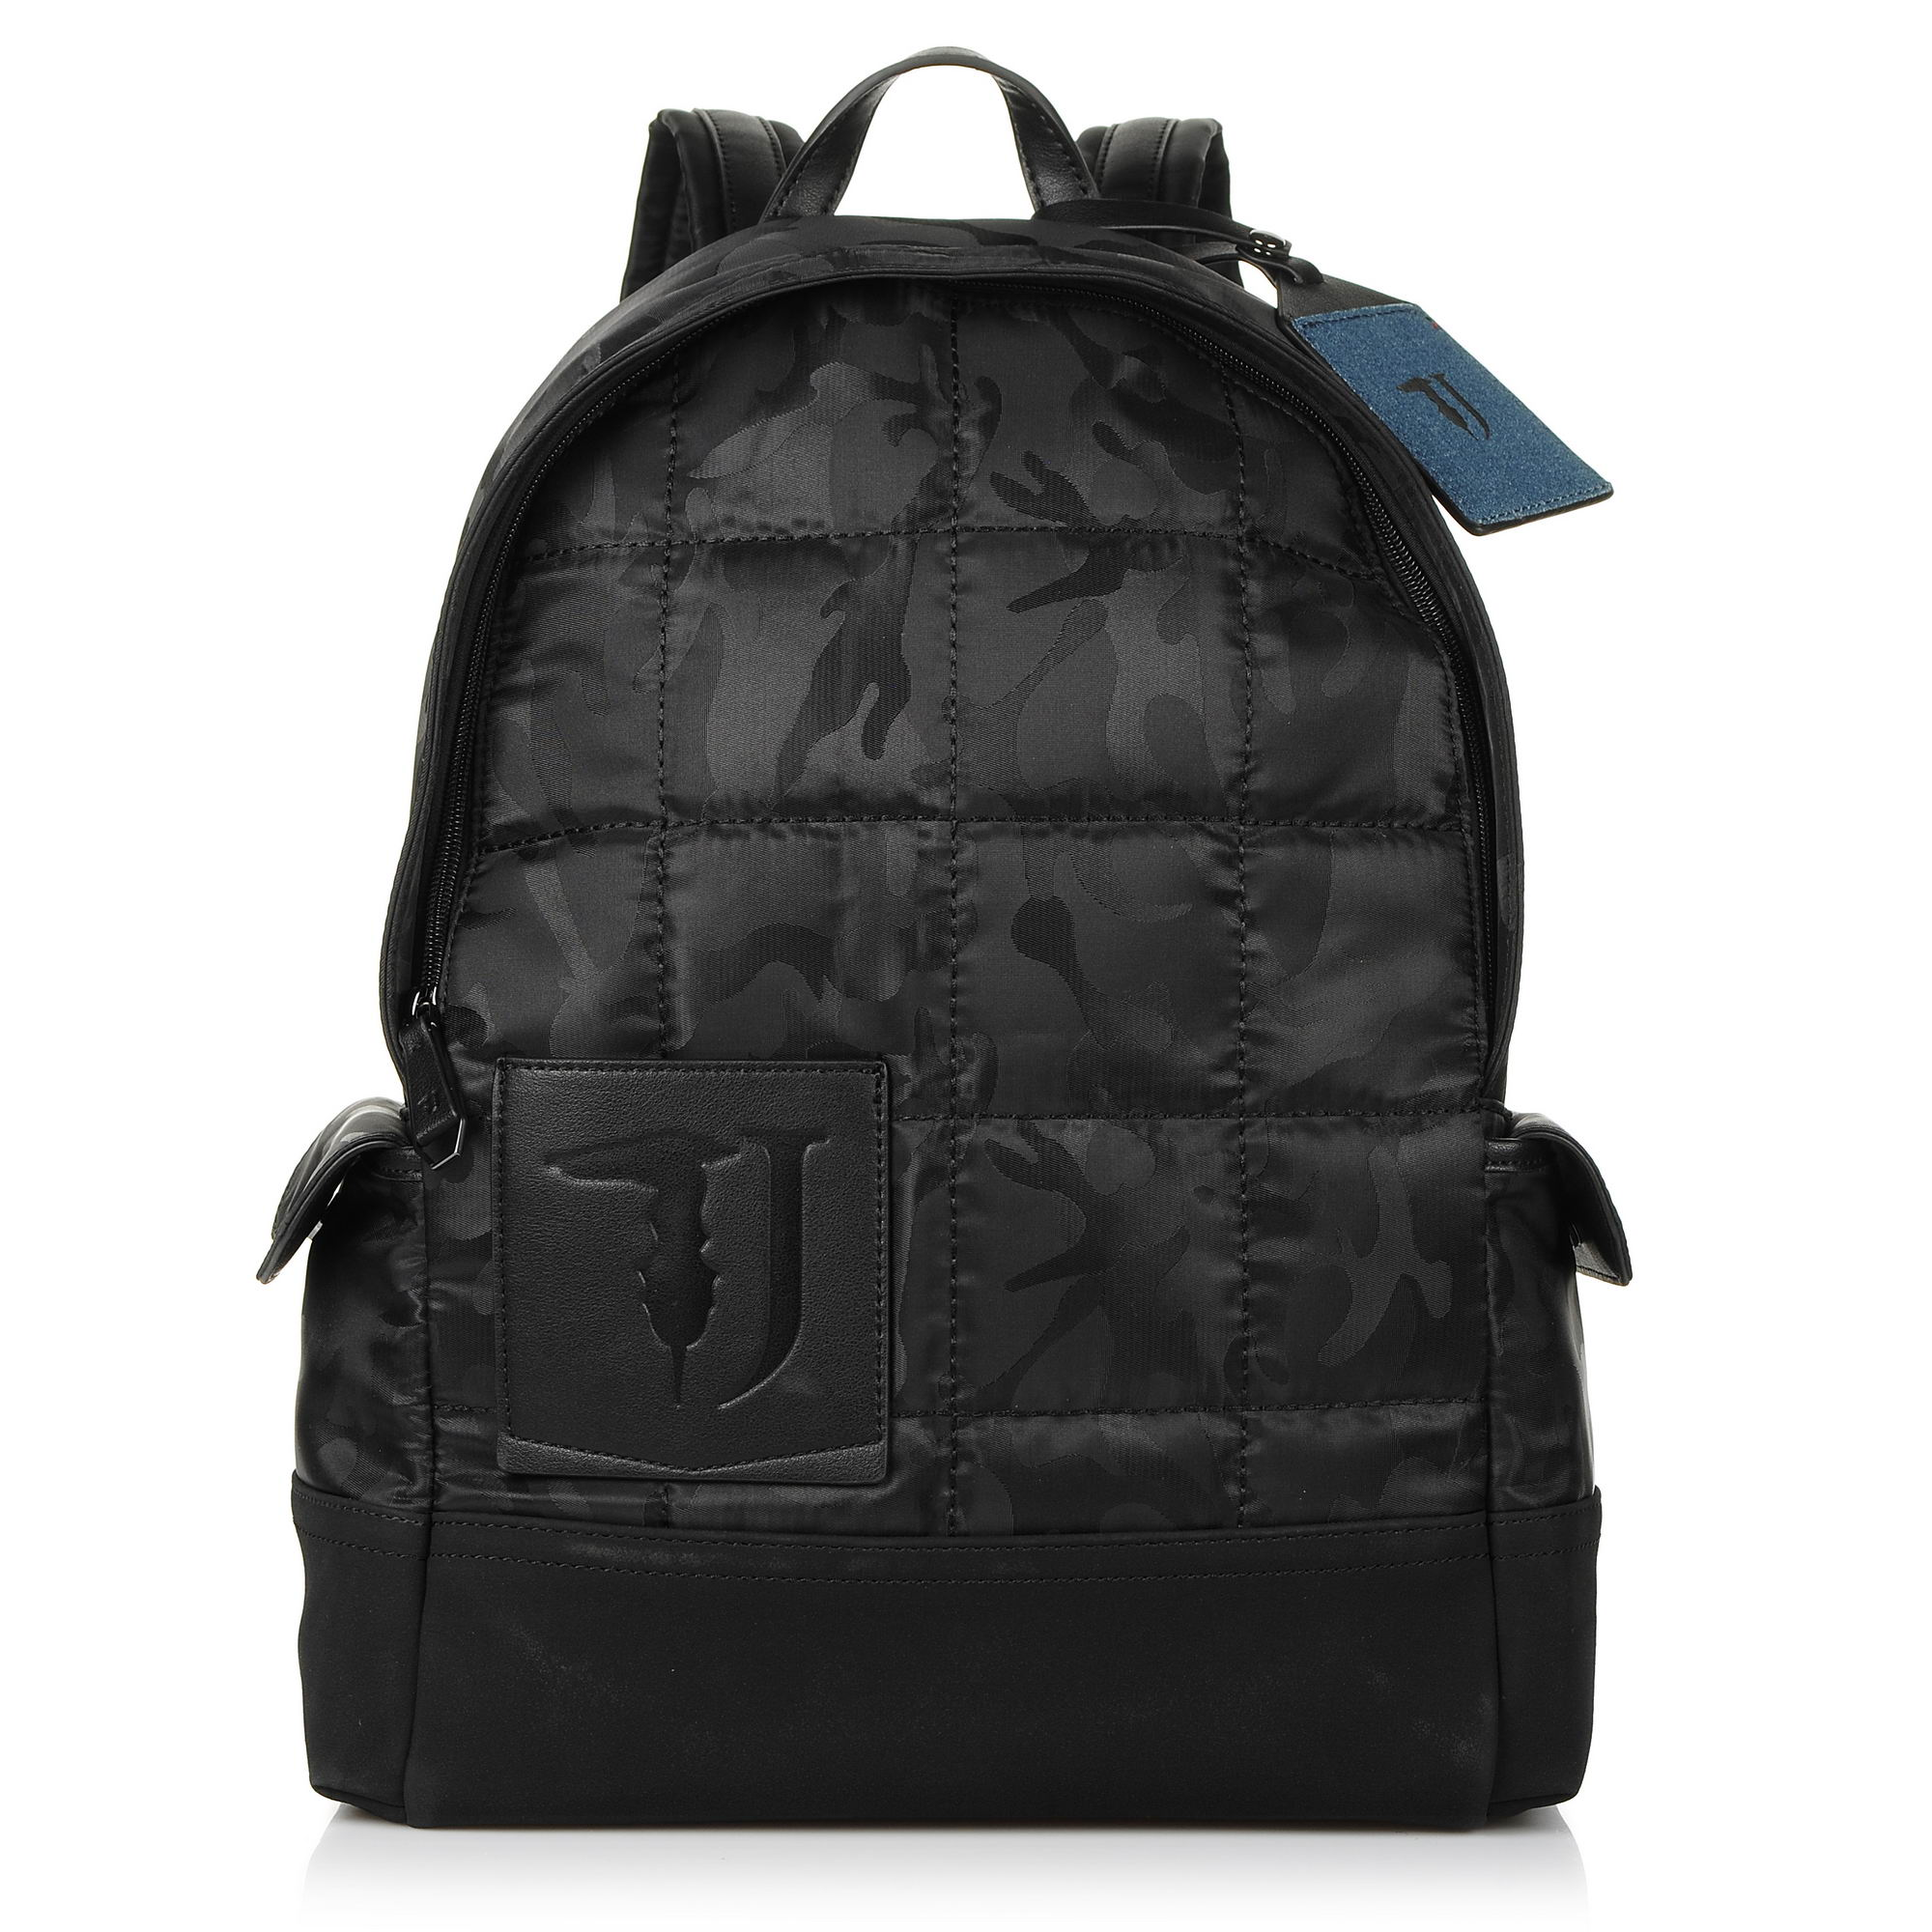 b8a606e4e1 Σακίδιο Πλάτης Trussardi Jeans Ticinese Backpack Nylon Camouflage ...